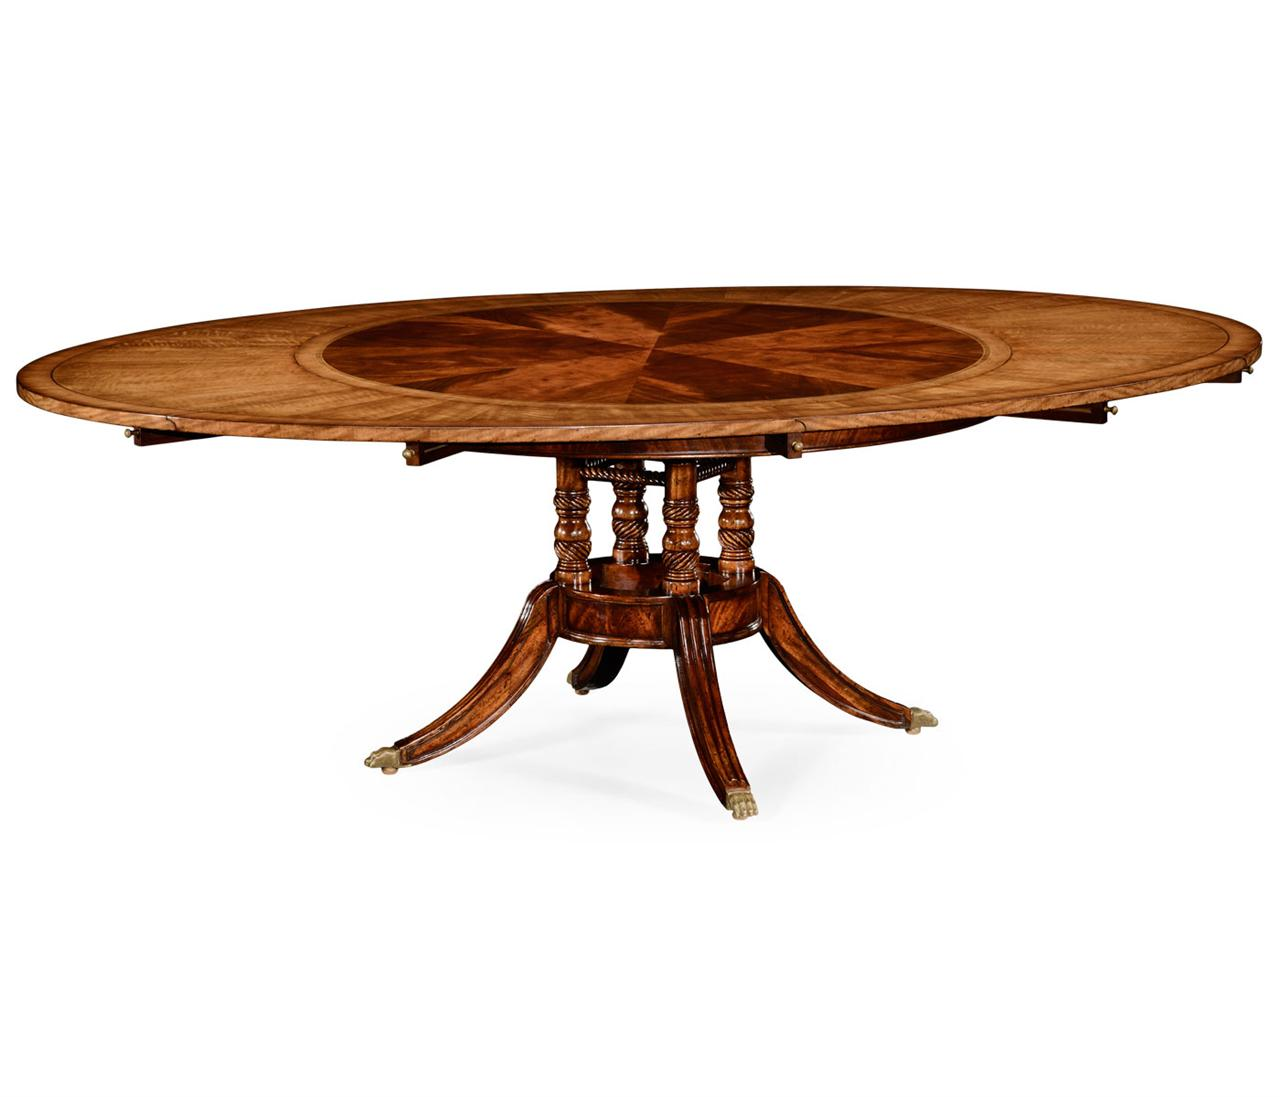 Round to oval table with perimeter leaves.